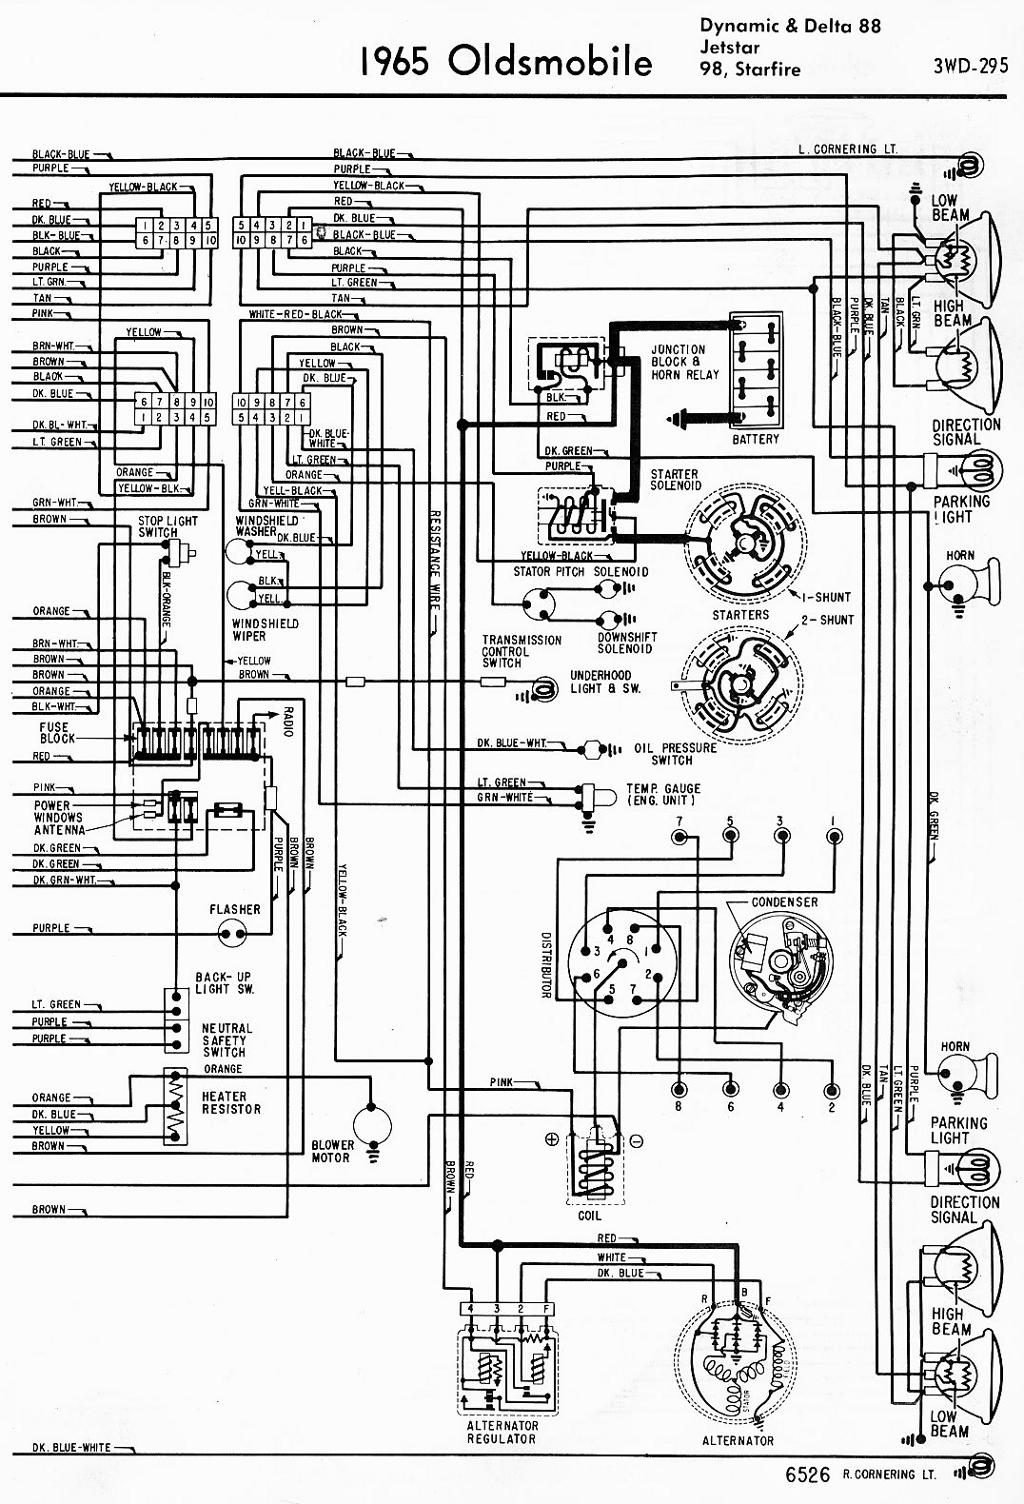 Nissan B15 Wiring Diagram Diagrams 97 Pathfinder Fuse Box Serena Location Temp Sensor 86 Hardbody Harness Schematic